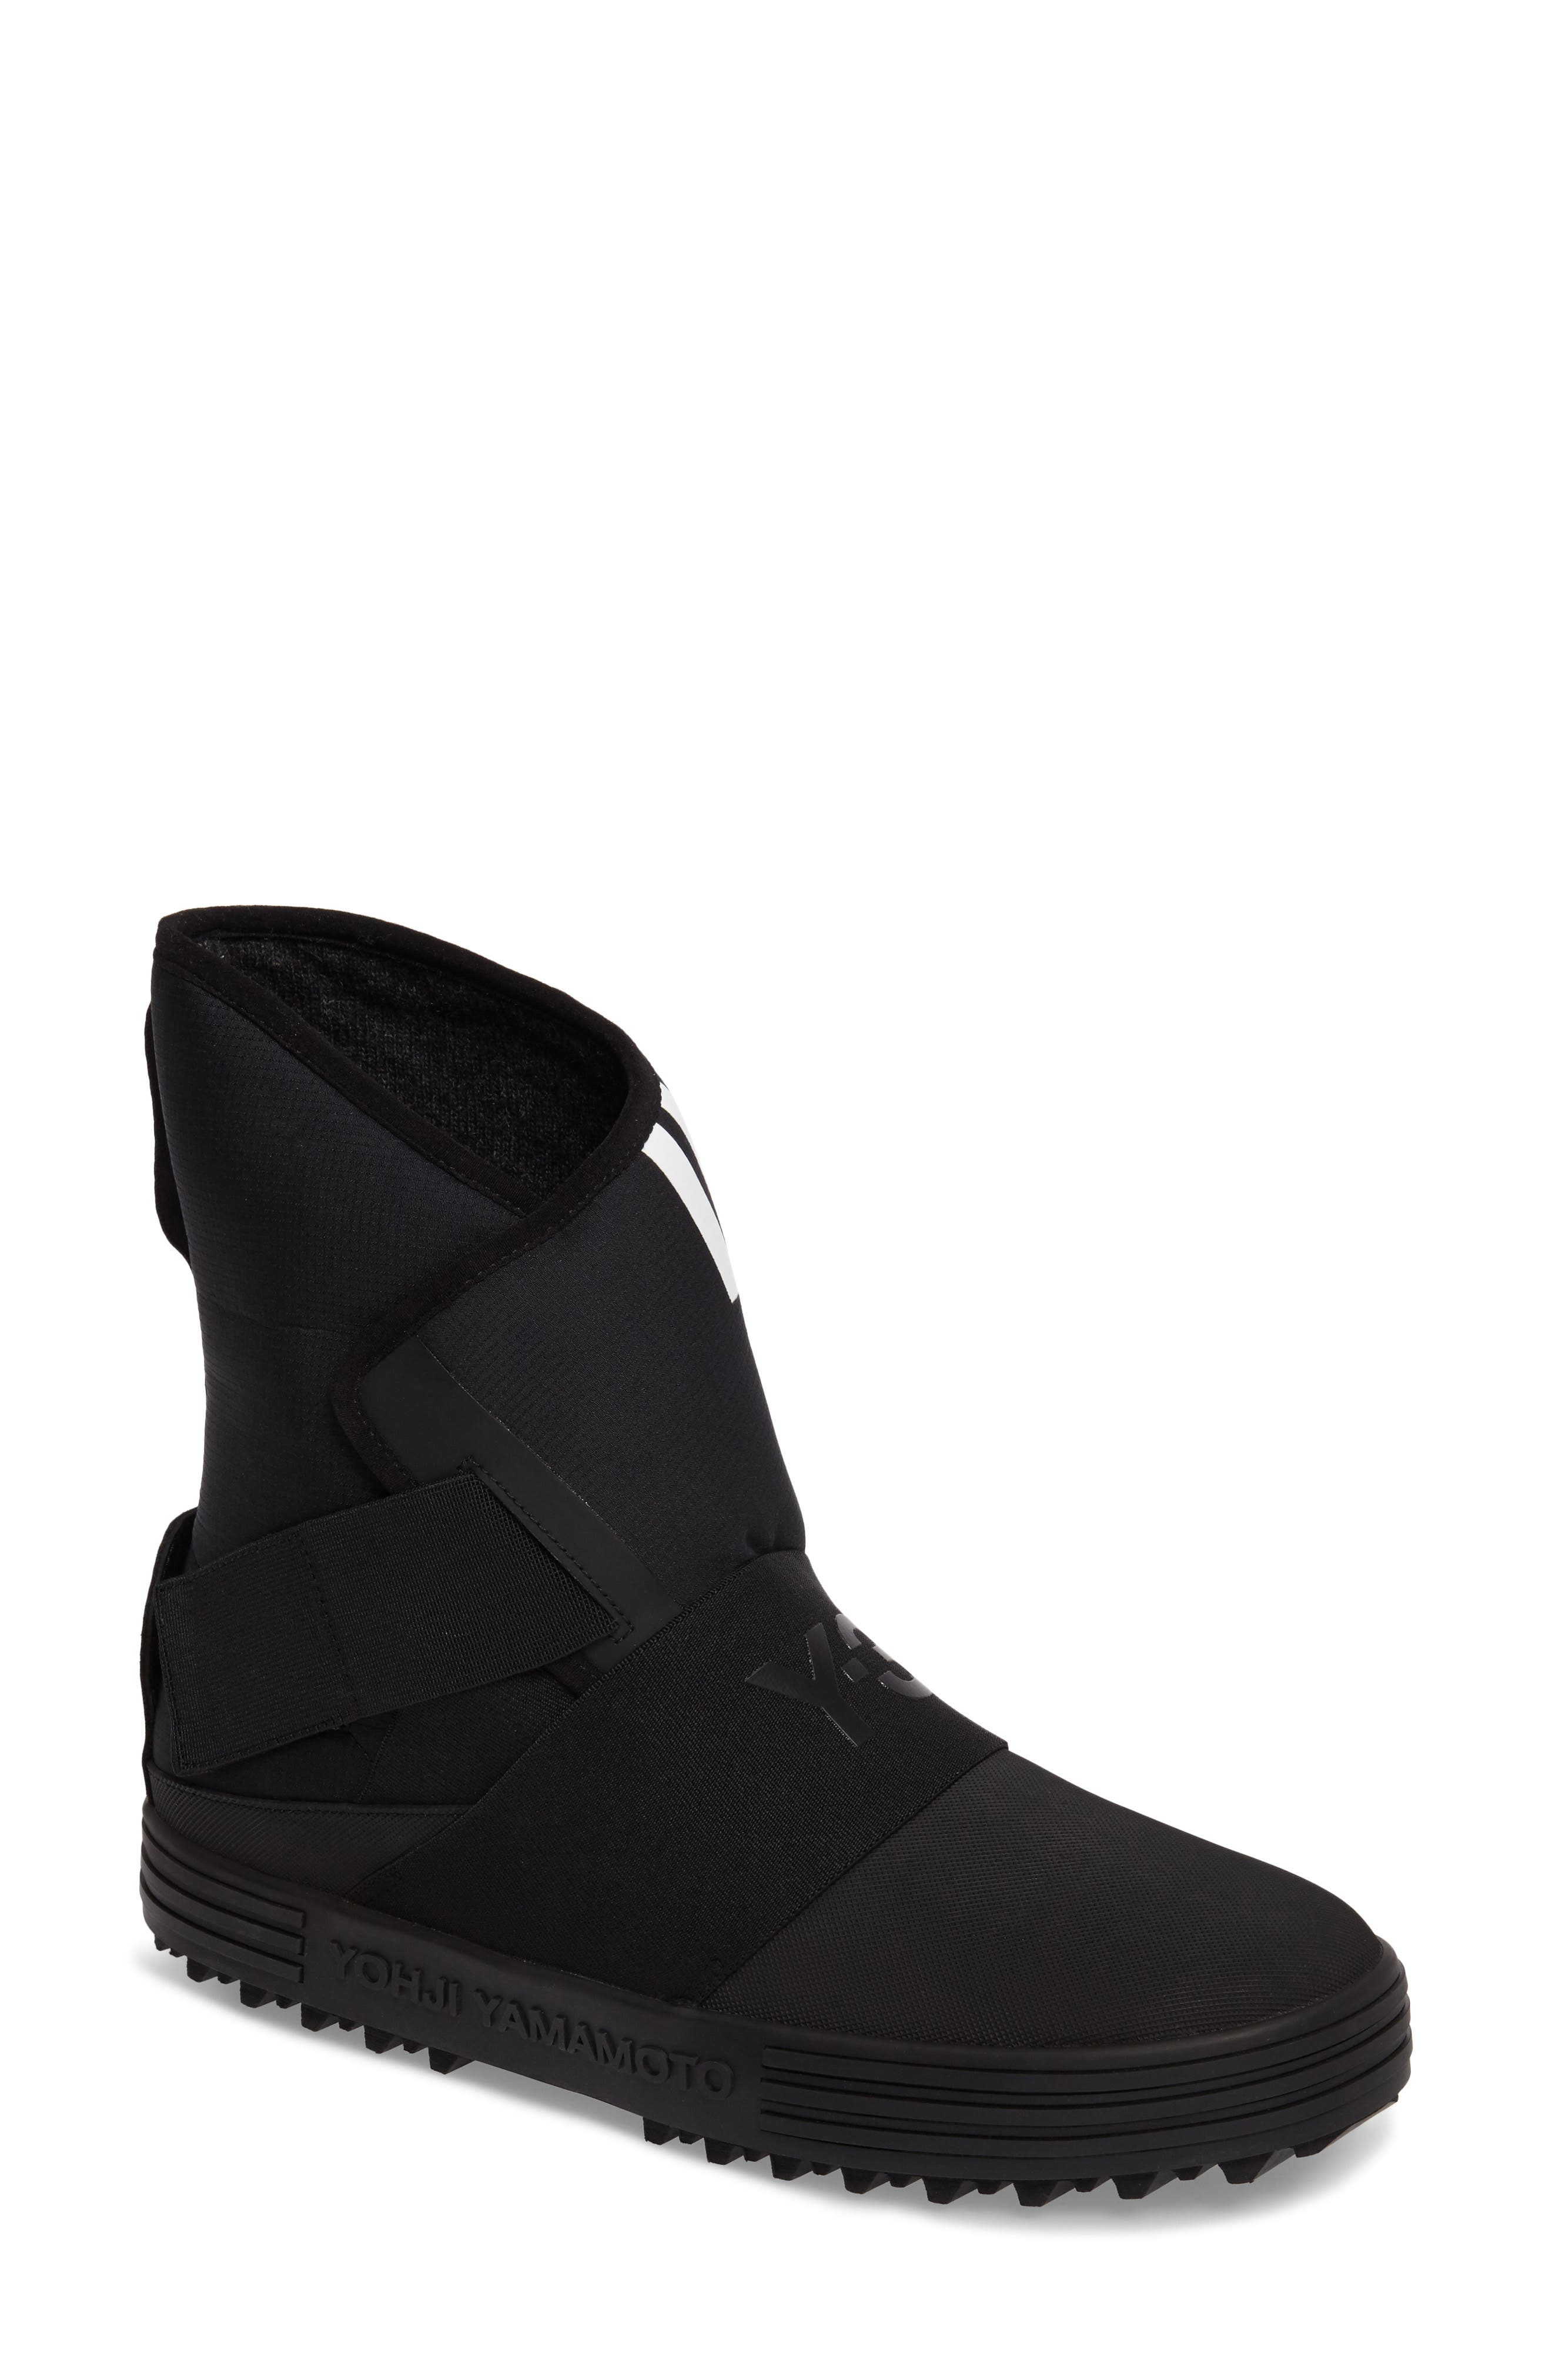 Y-3 Sno Foxing High Top Sneaker (Women)